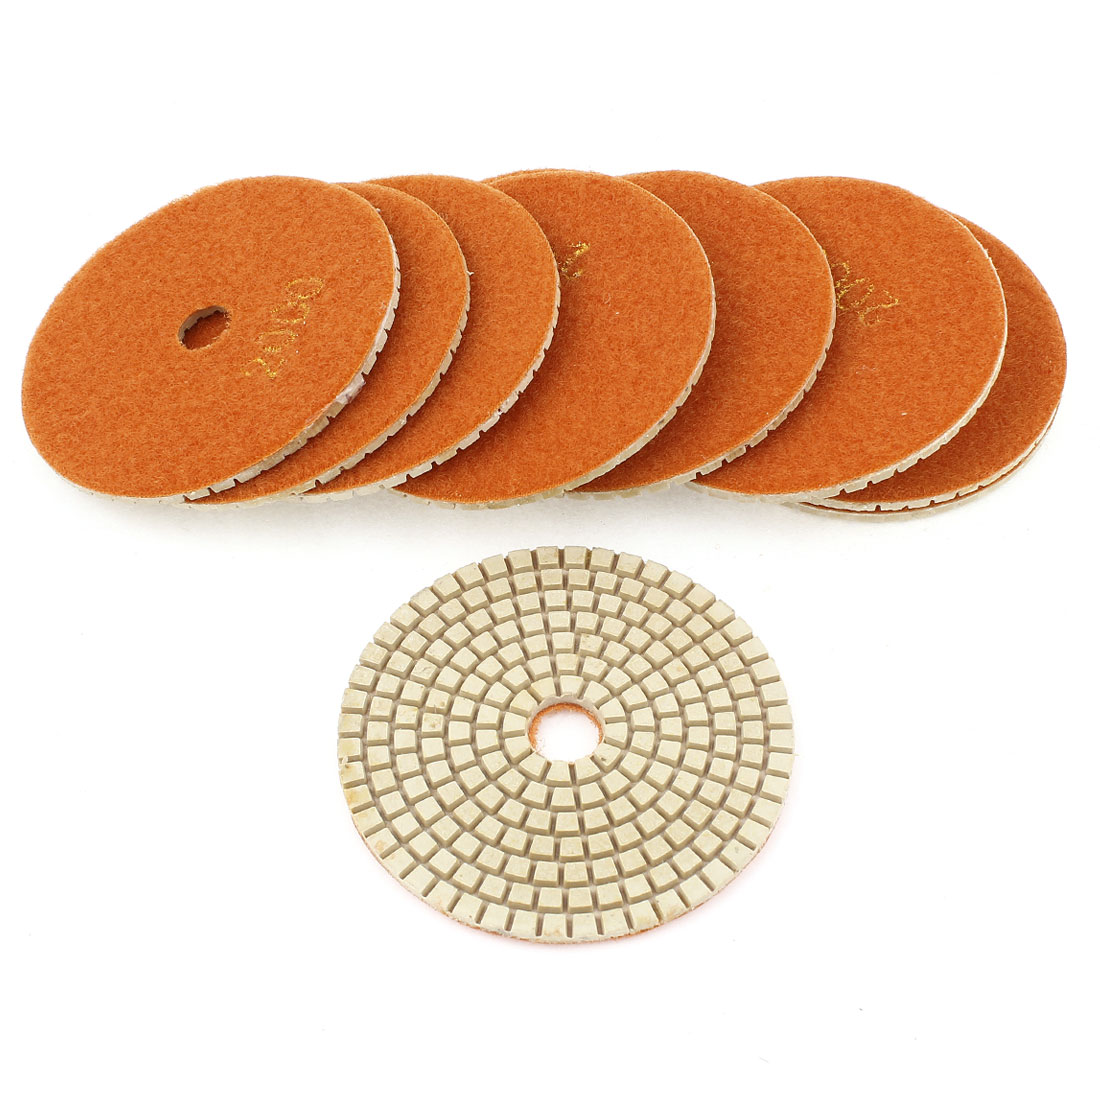 "10 Pcs 4"" Diamond Polishing Wet Pads Grit 2000 Orange for Granite Concrete Stone"